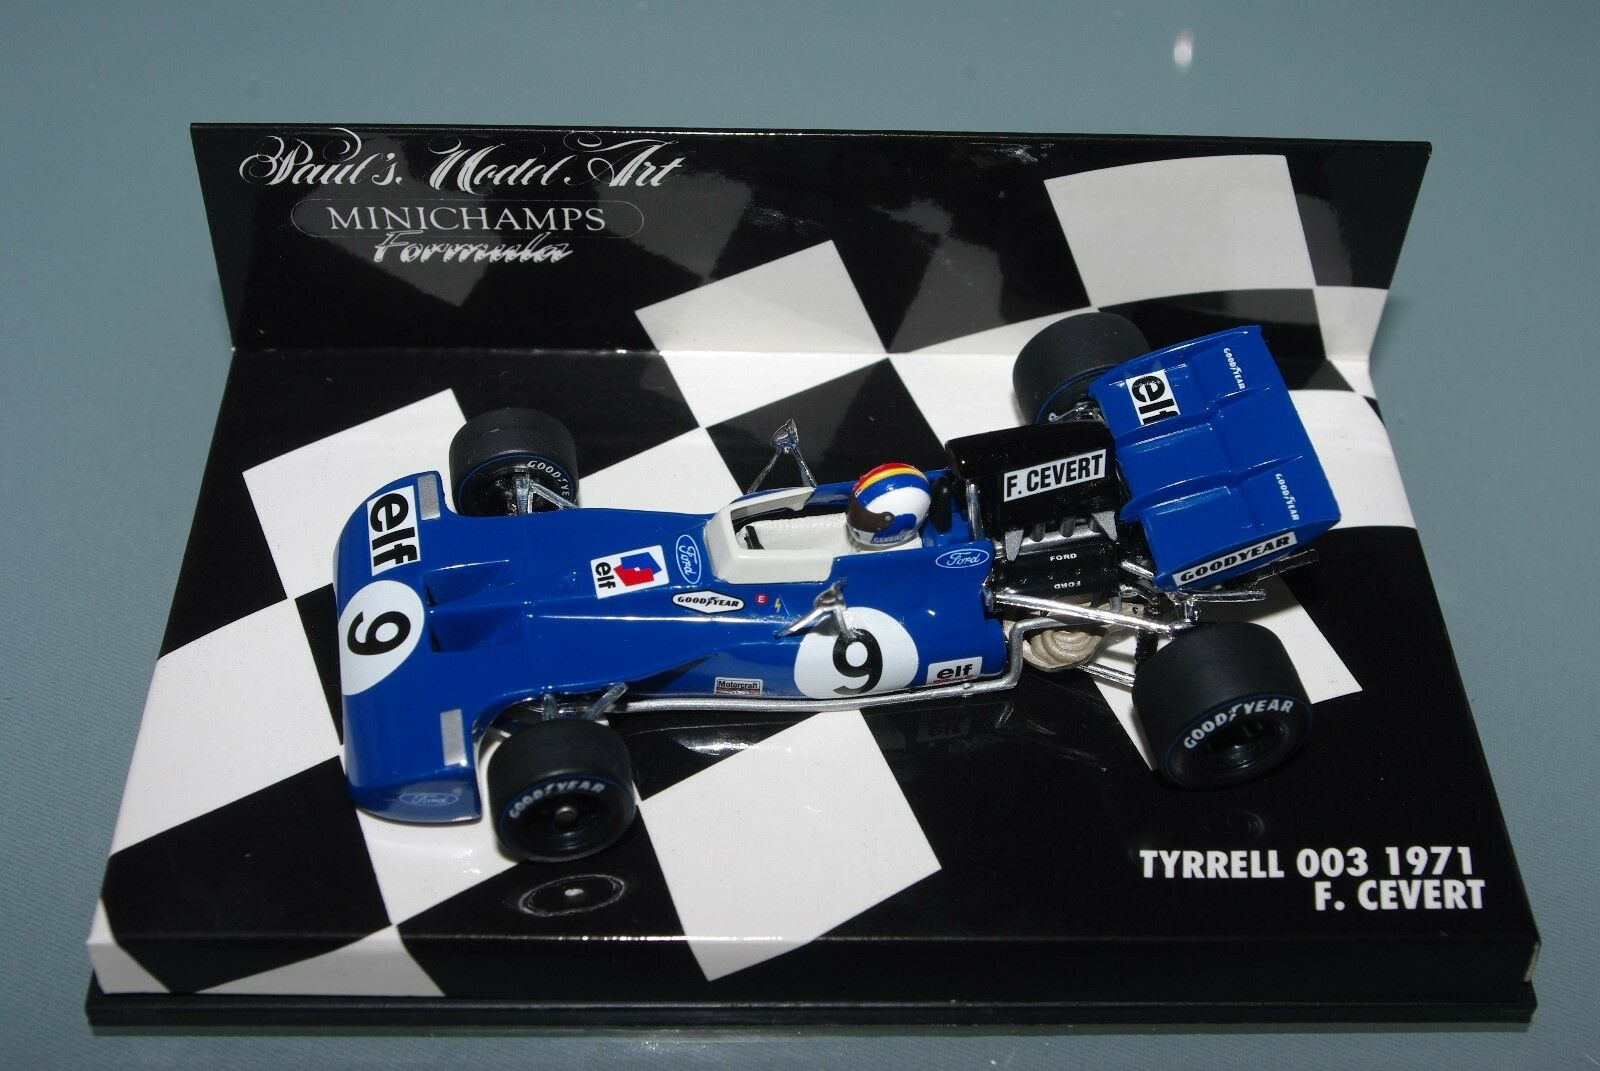 Minichamps F1 1 43 Tyrrell Ford 003-F. CEverde - 1971